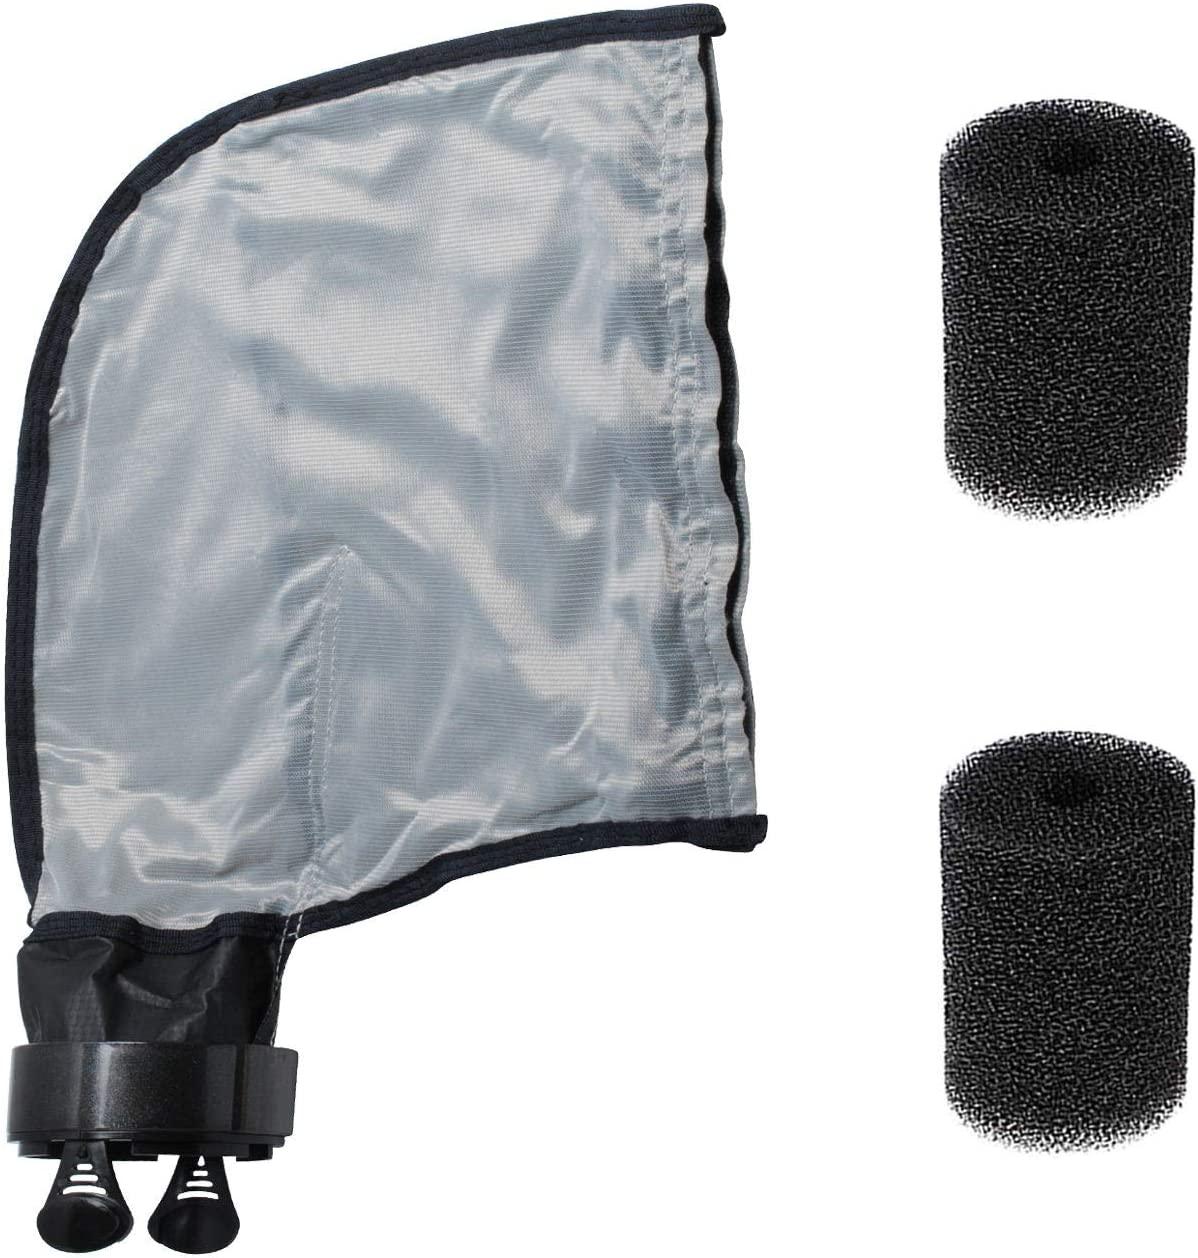 39-310 Zipper Bag for Compatible with Polaris 3900 Pool Cleaner, accommodate 5 Liters Capacity with 9-100-3105 Sweep Hose Scrubber Replace Gray Double Superbag